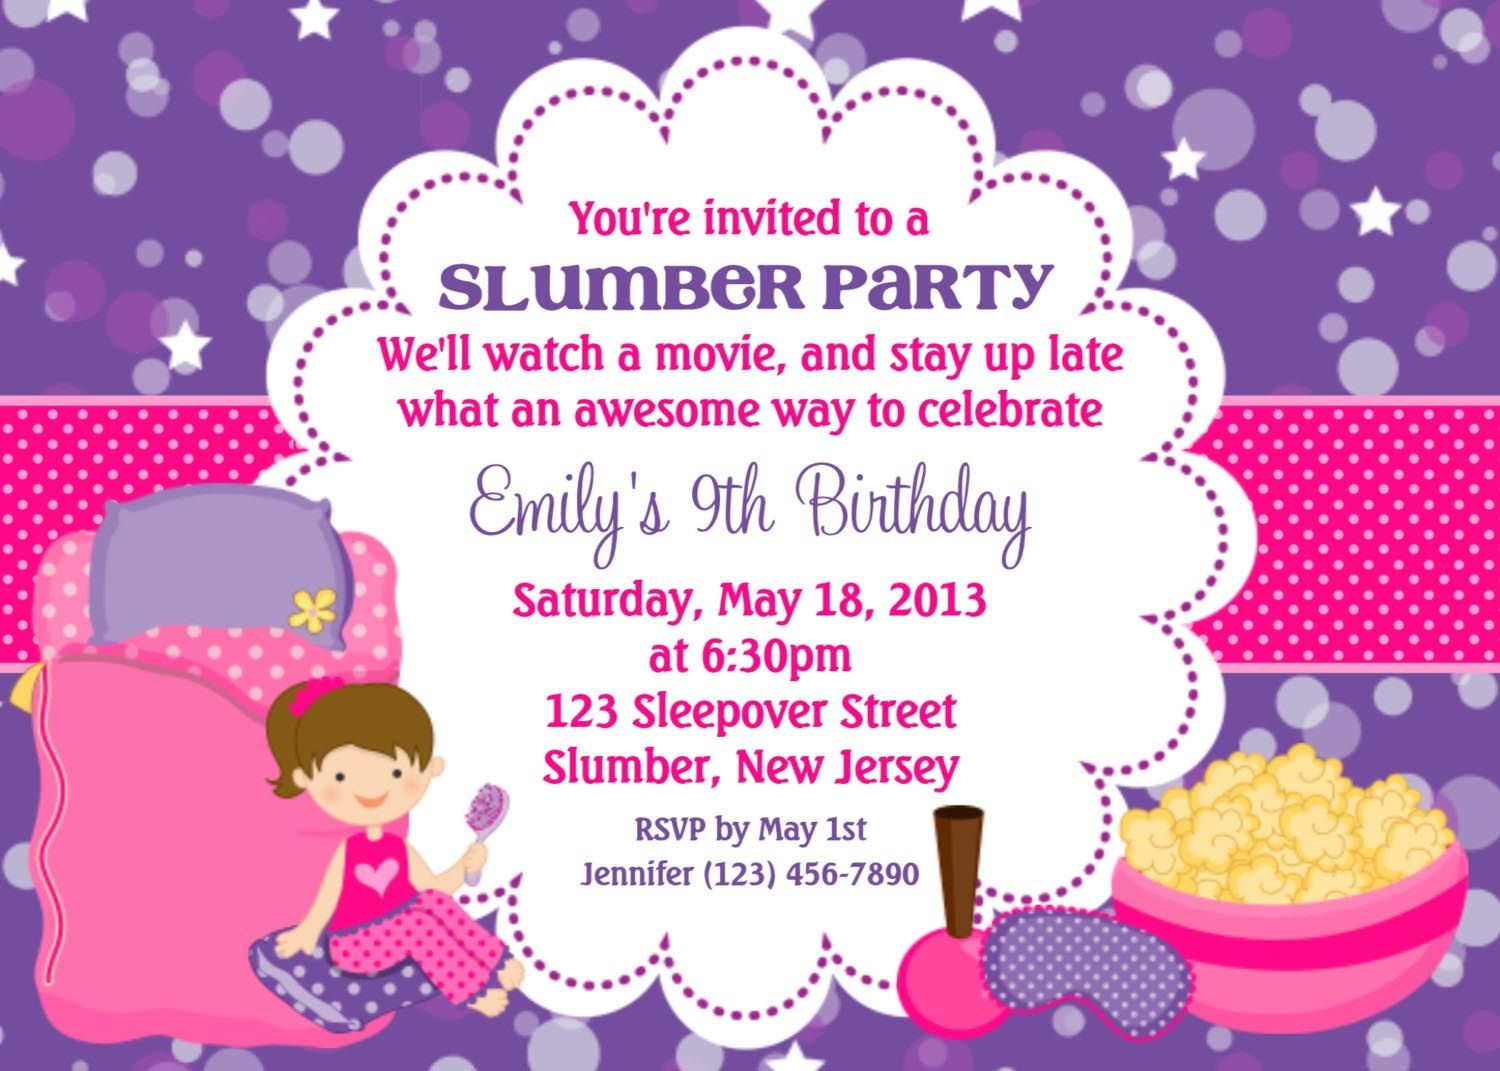 Spa Party Invitations Templates Free | spa party | Pinterest | Spa ...